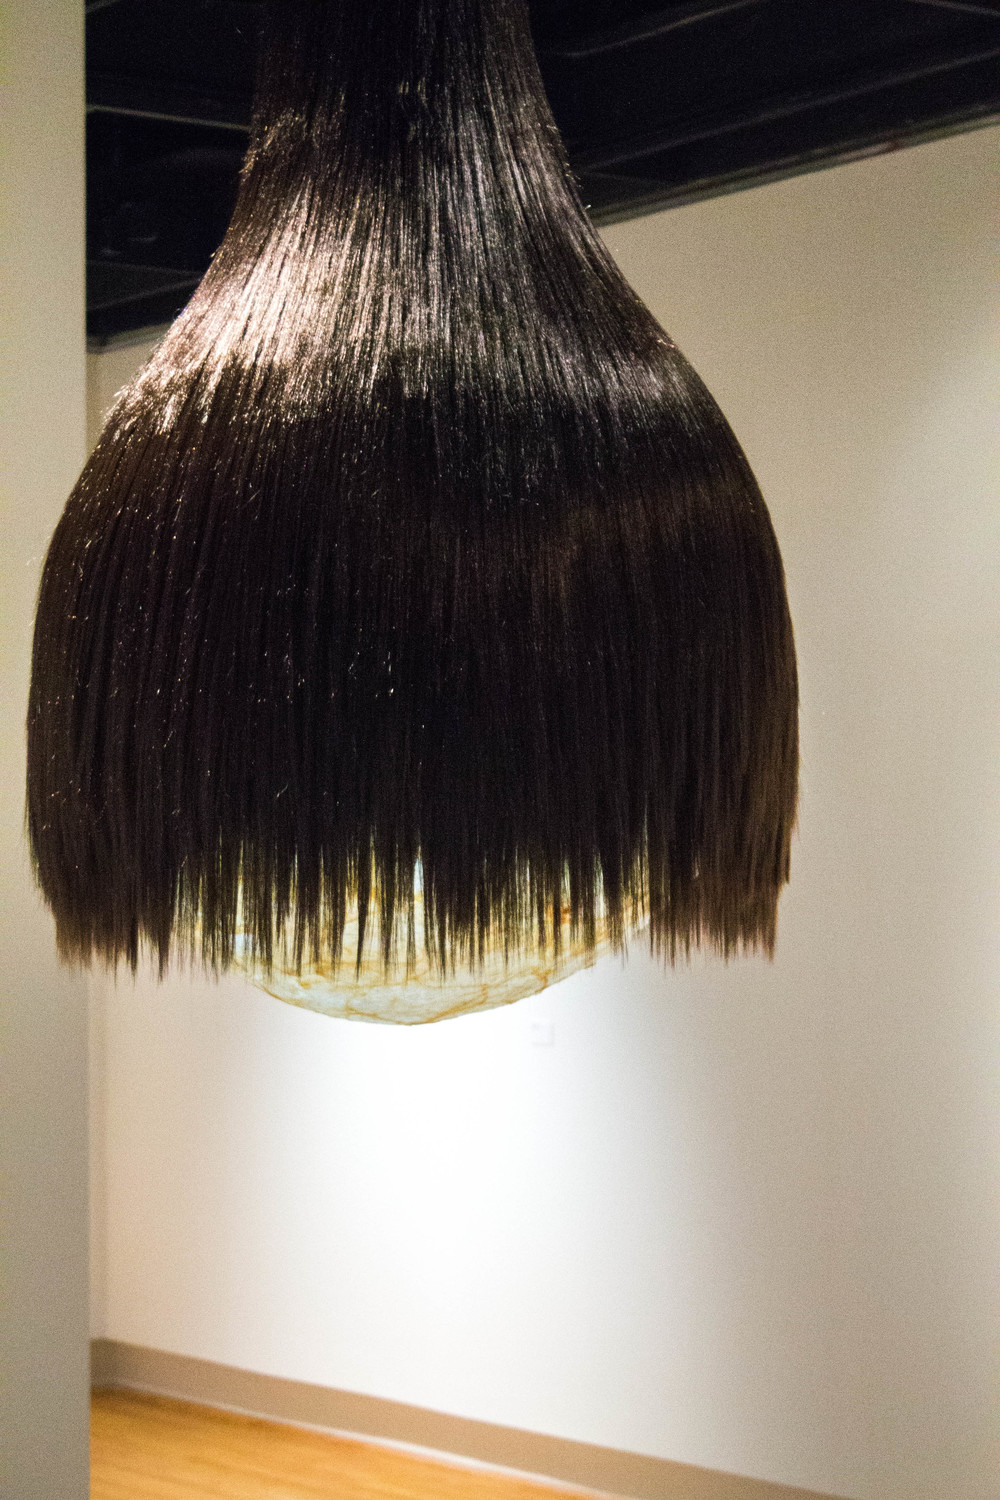 We Can't Pull Ourselves Up To Heaven By The Hair (Samson's Foible)   - 2014 - synthetic hair extensions, fiberglass resin, pork caul fat, cardboard, and light - 8 x 2.5 x 2.5 ft.